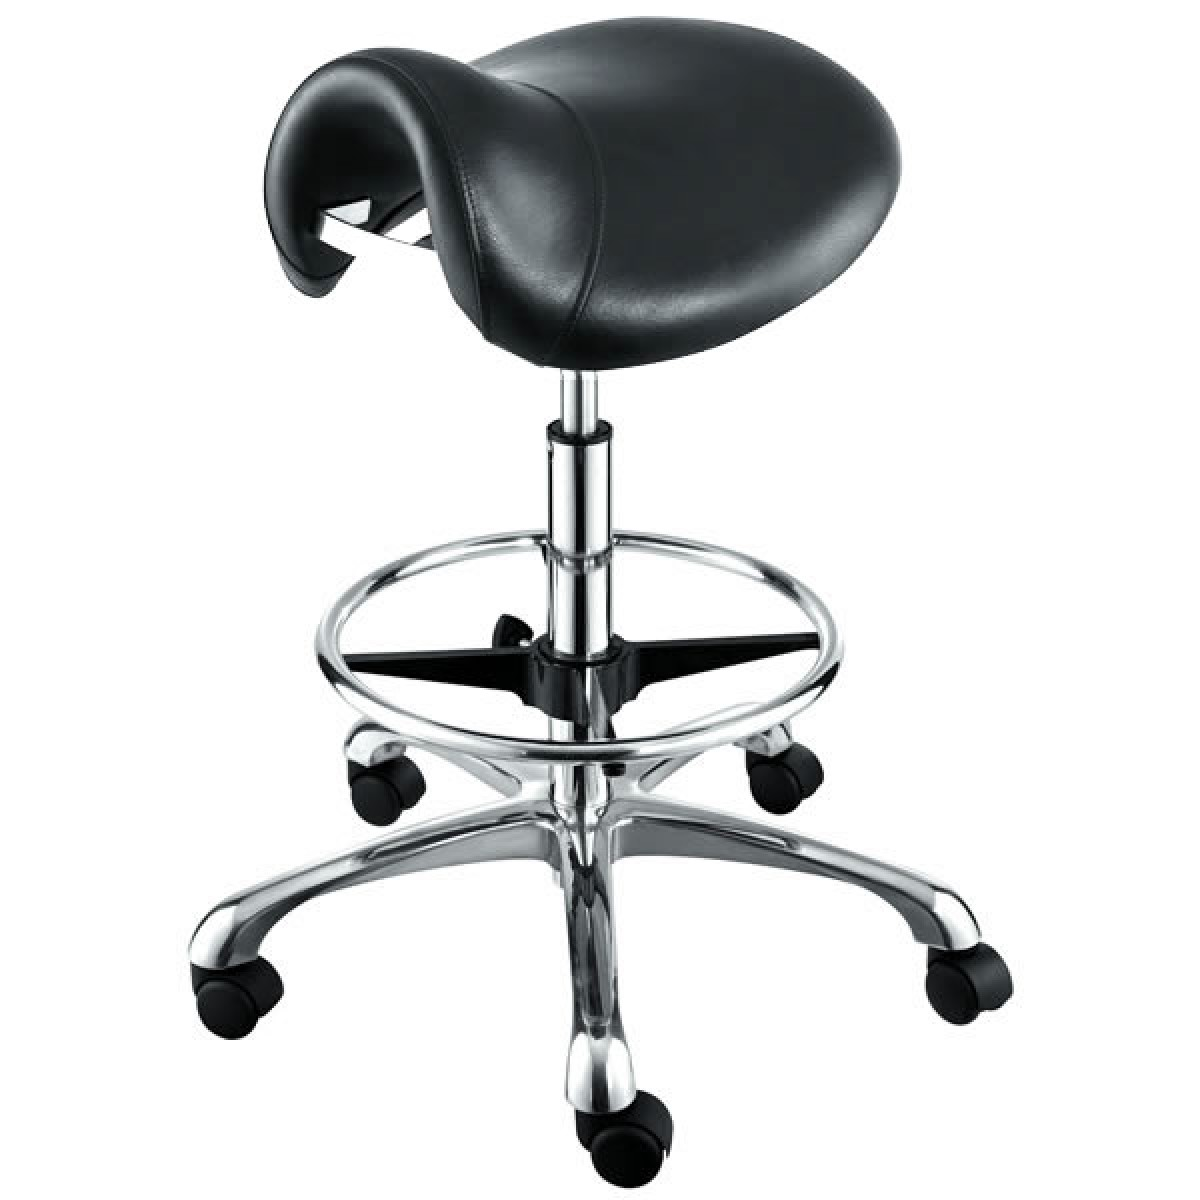 ergonomic chair with footrest shower chairs lowes